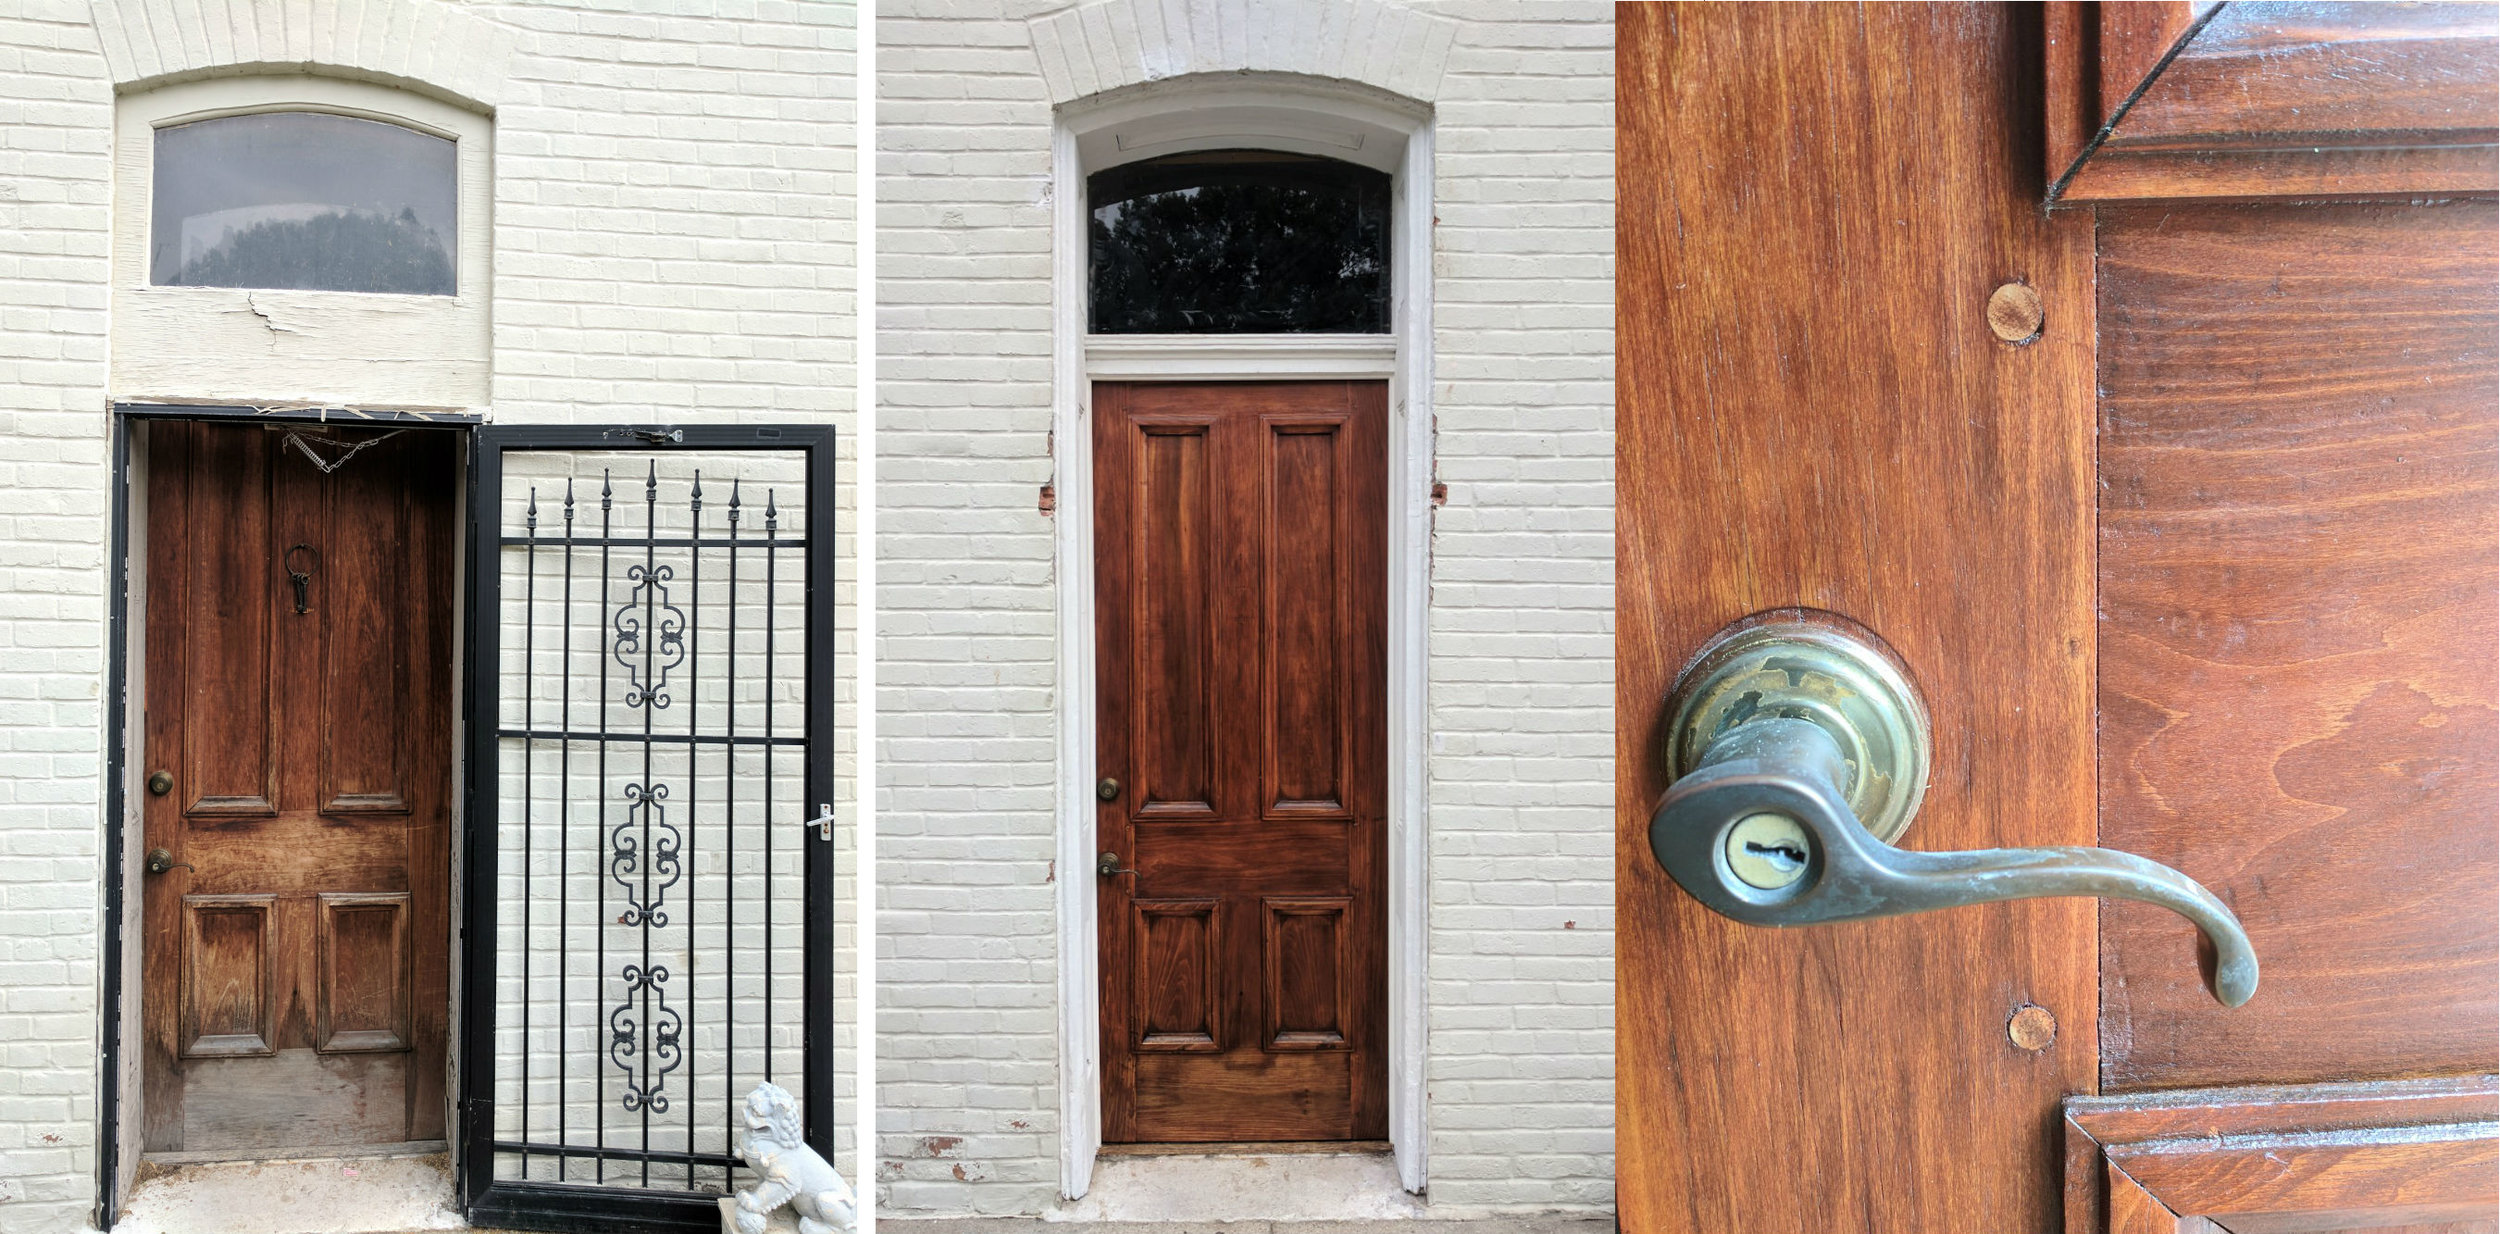 We restored the original back door and trimwork in this historic Lafayette Square home. We realigned the joinery of the door and added poplar pins to prevent it from failing in the future.